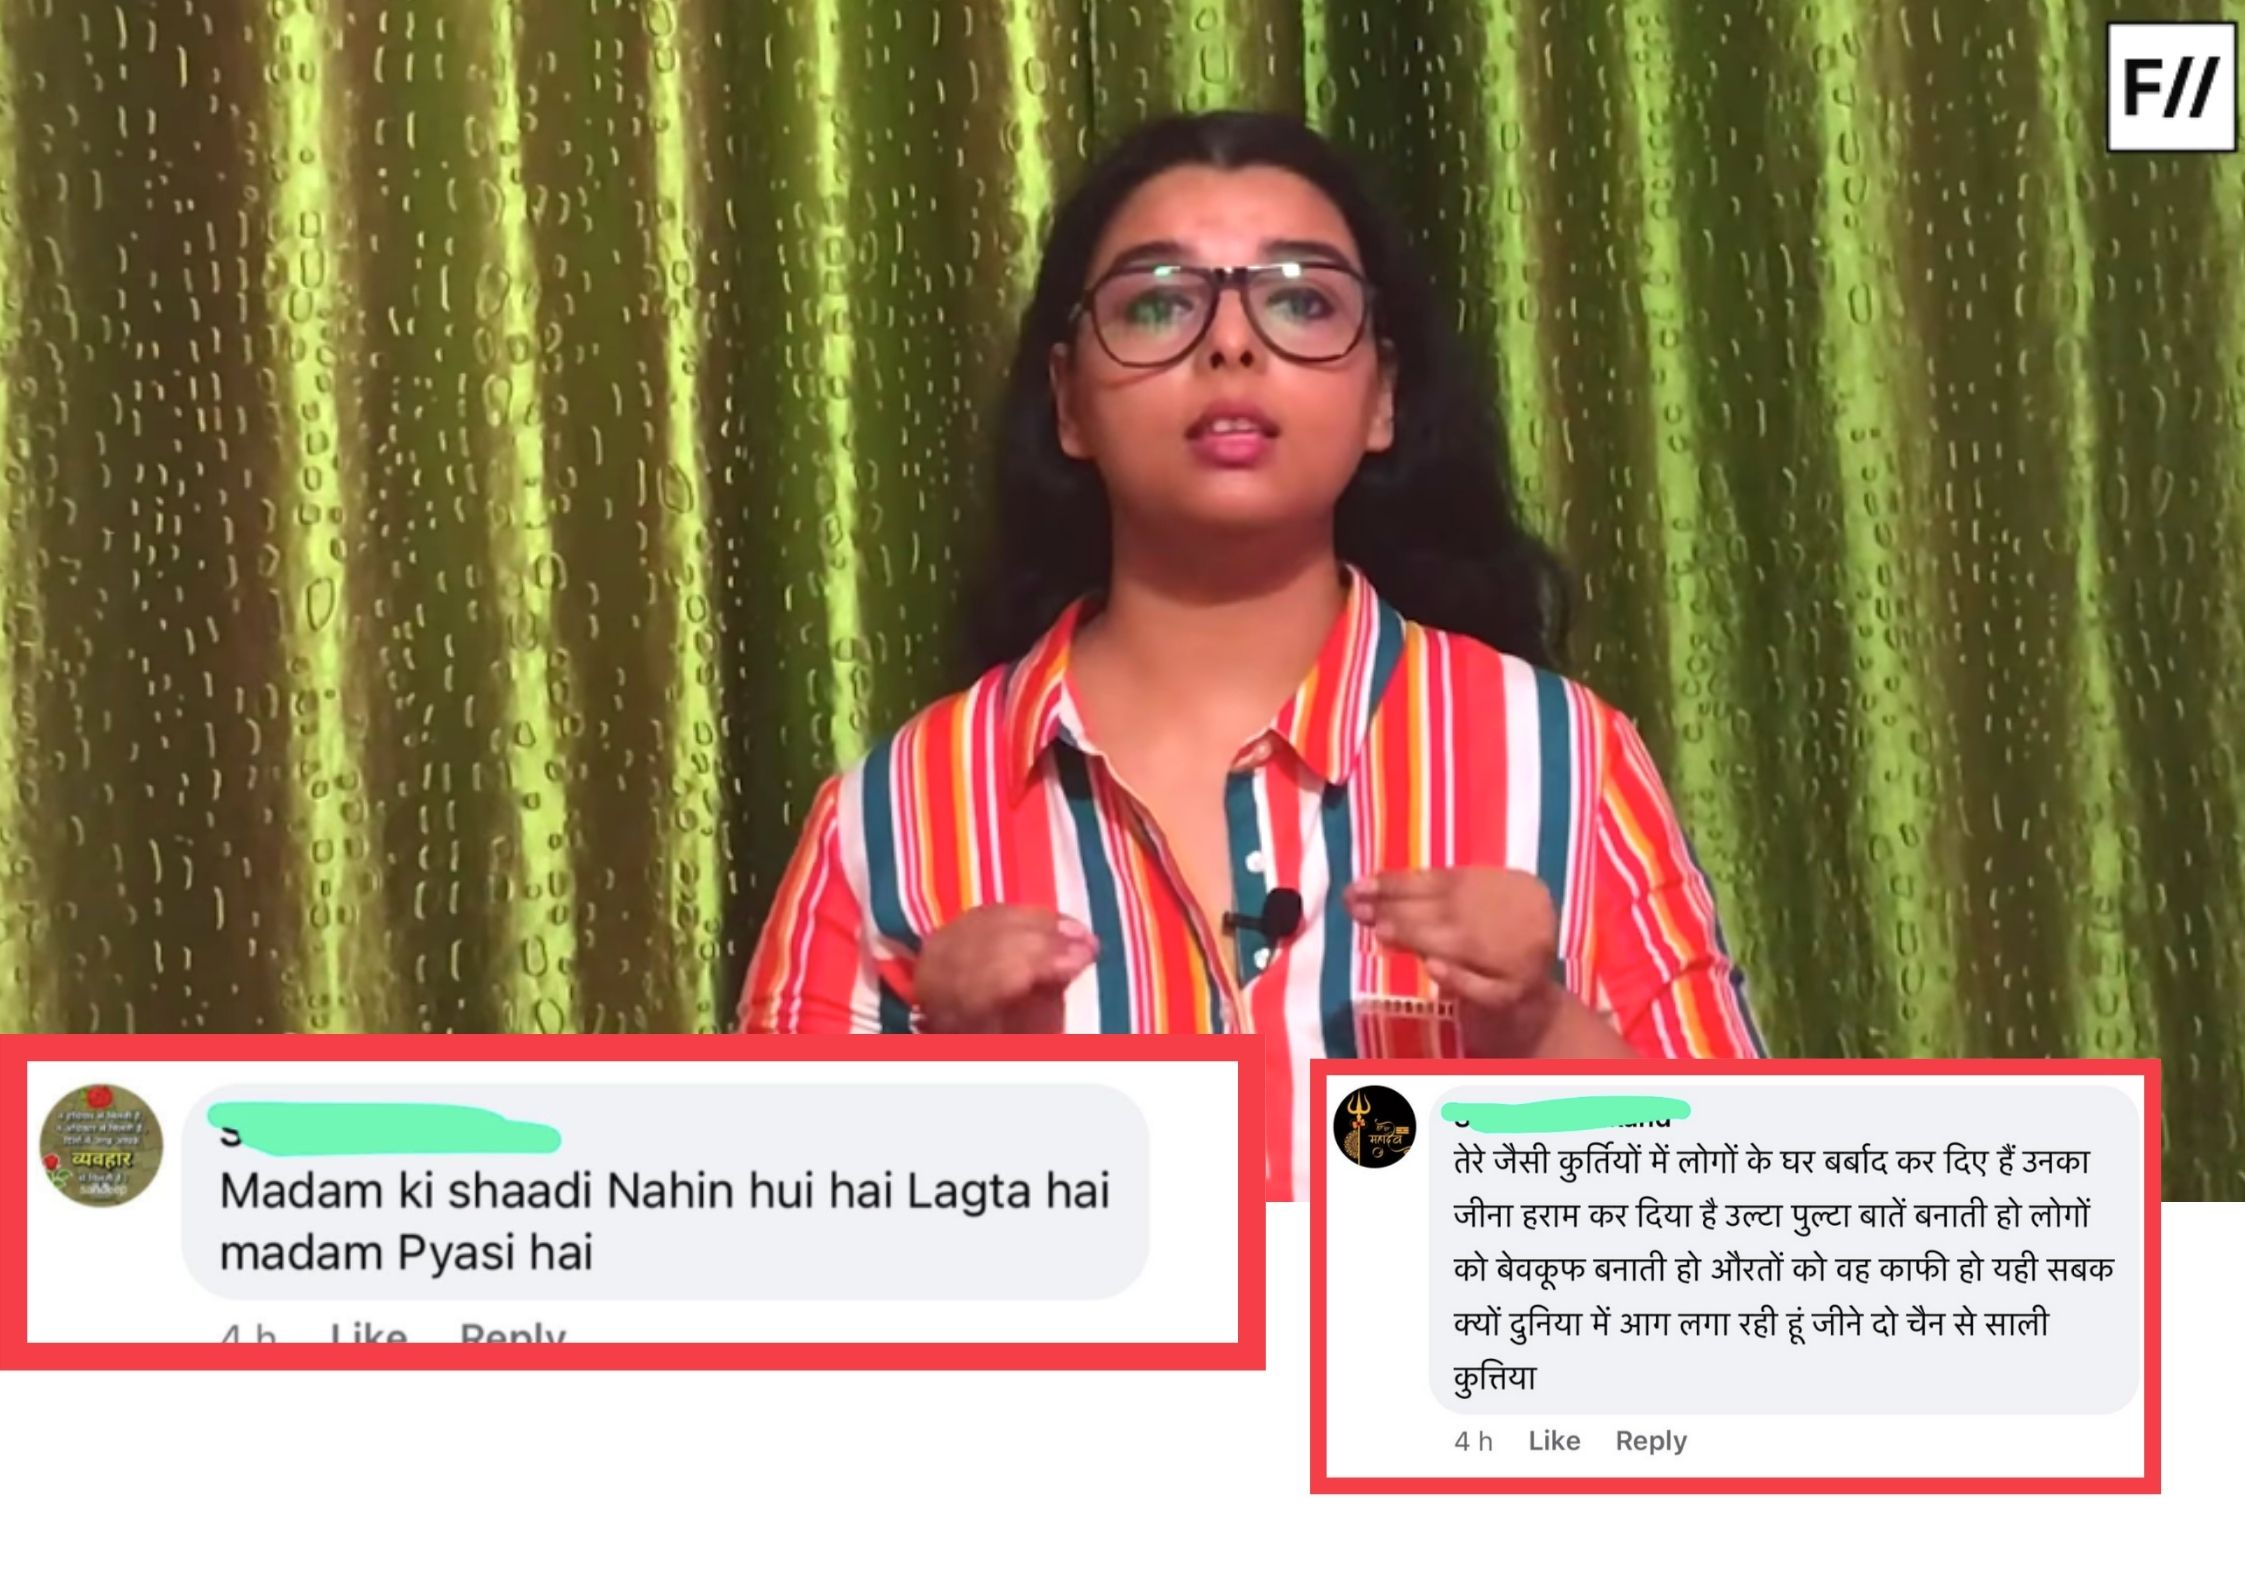 violence-against-women-voice-and-challenges-in-trolling-era-hindi